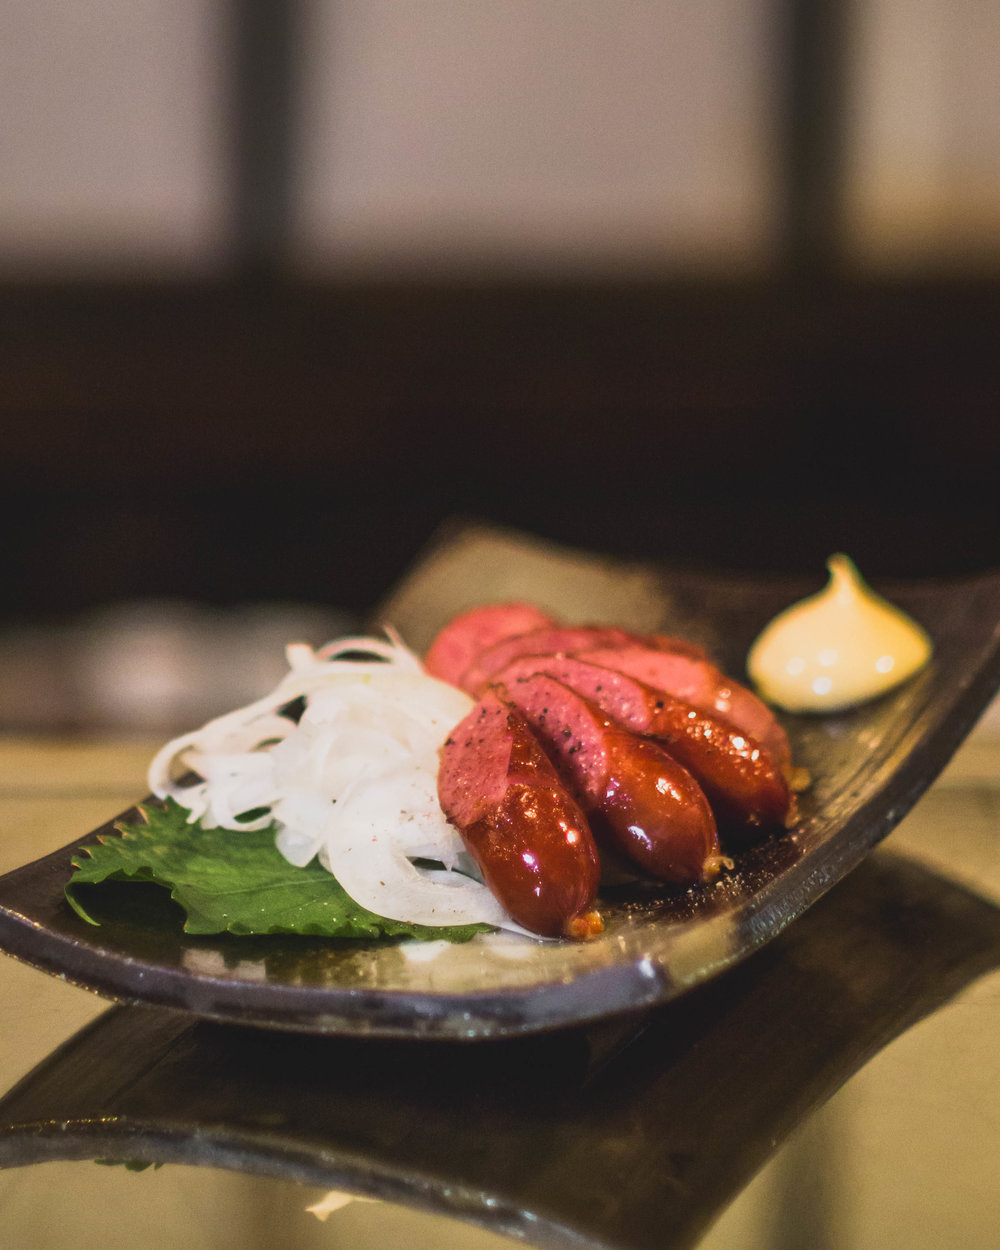 BERKSHIRE PORK SAUSAGE - Pan-fried sausages w/ Yuzu pepper mayo